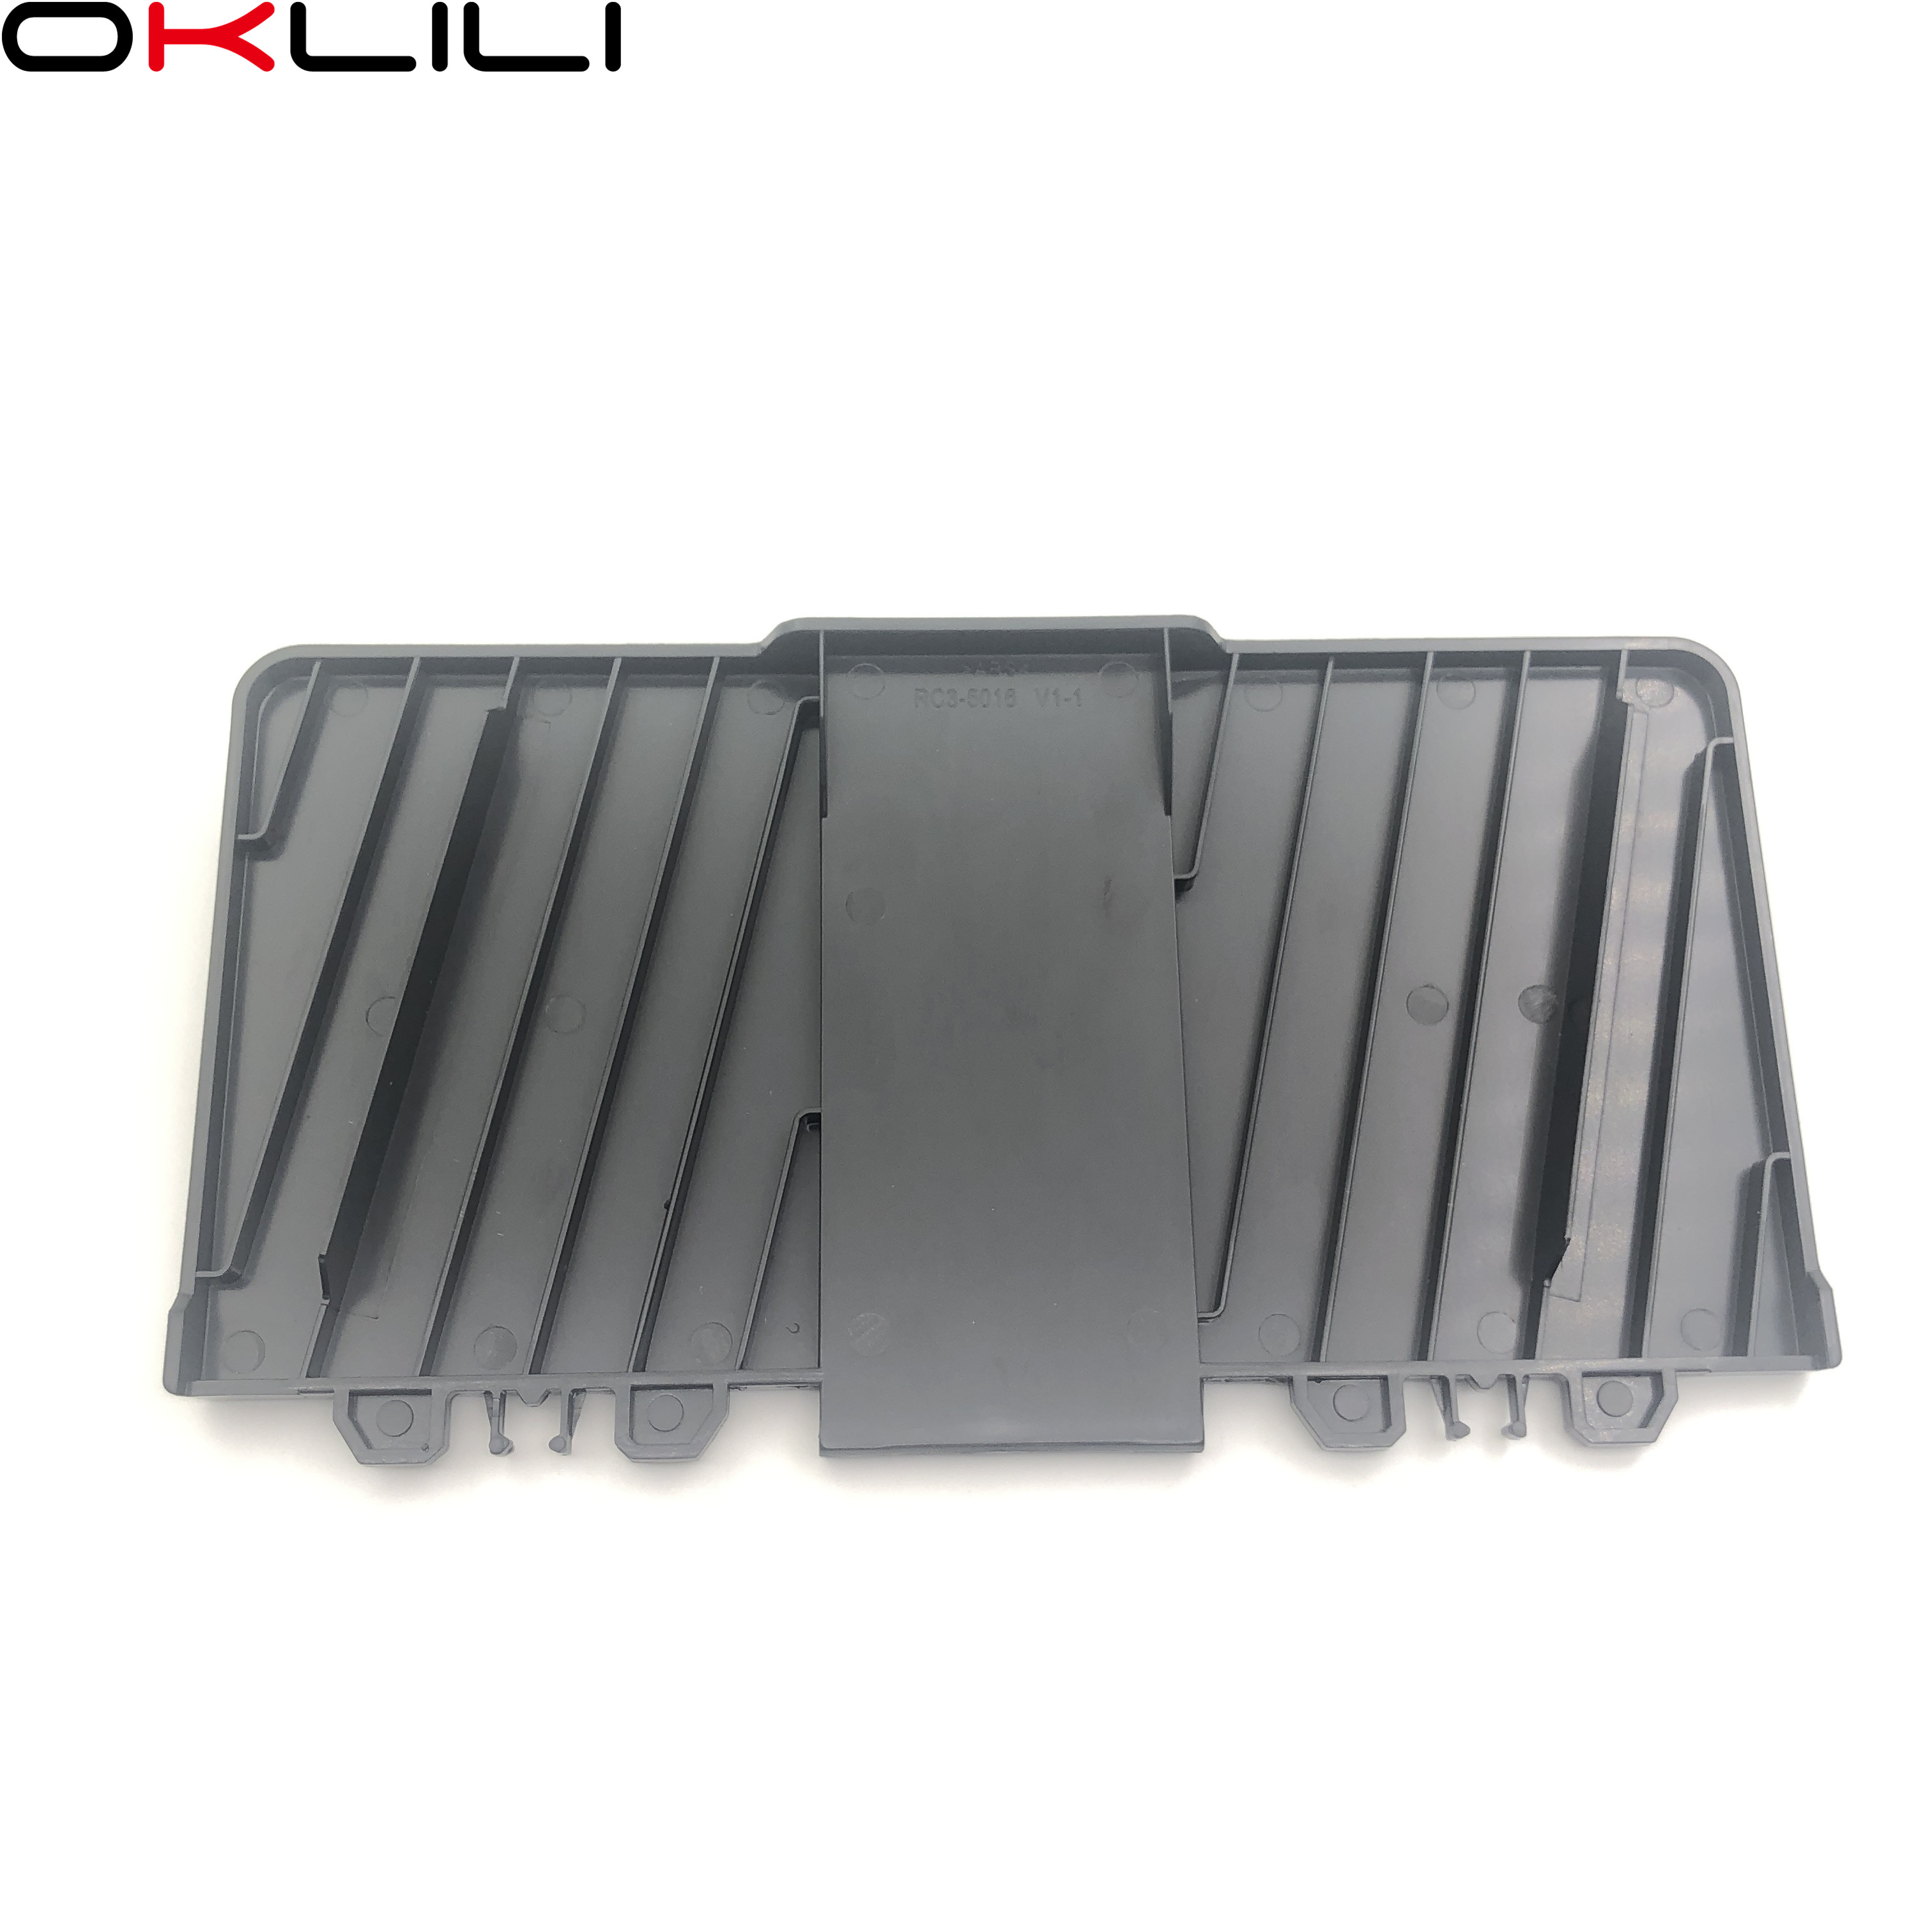 5PC X RC3-5016-000CN Paper Input Tray Assembly for <font><b>HP</b></font> M125a M125nw M125r M125rnw M126nw M127fn <font><b>M127fw</b></font> M128fp M125 M126 M127 M128 image